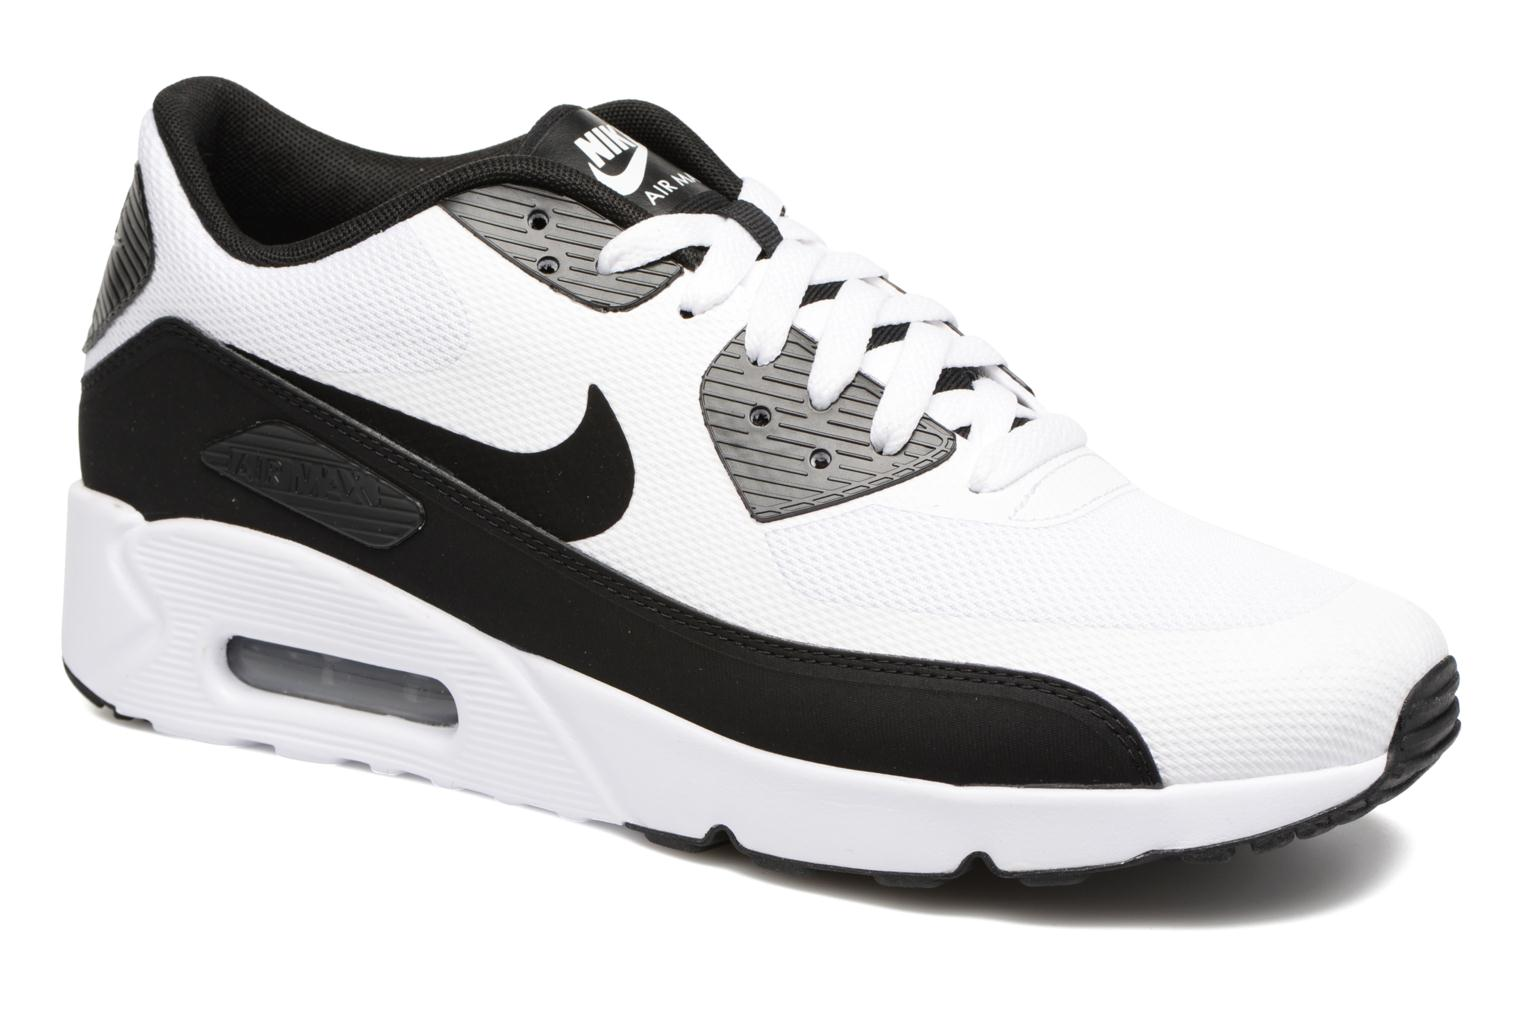 new arrival 11a6a 60e4b Nike Air Max 90 Ultra 2.0 Essential (Blanc) - Baskets chez Sarenza (280758)  GH8HUA1Z - destrainspourtous.fr